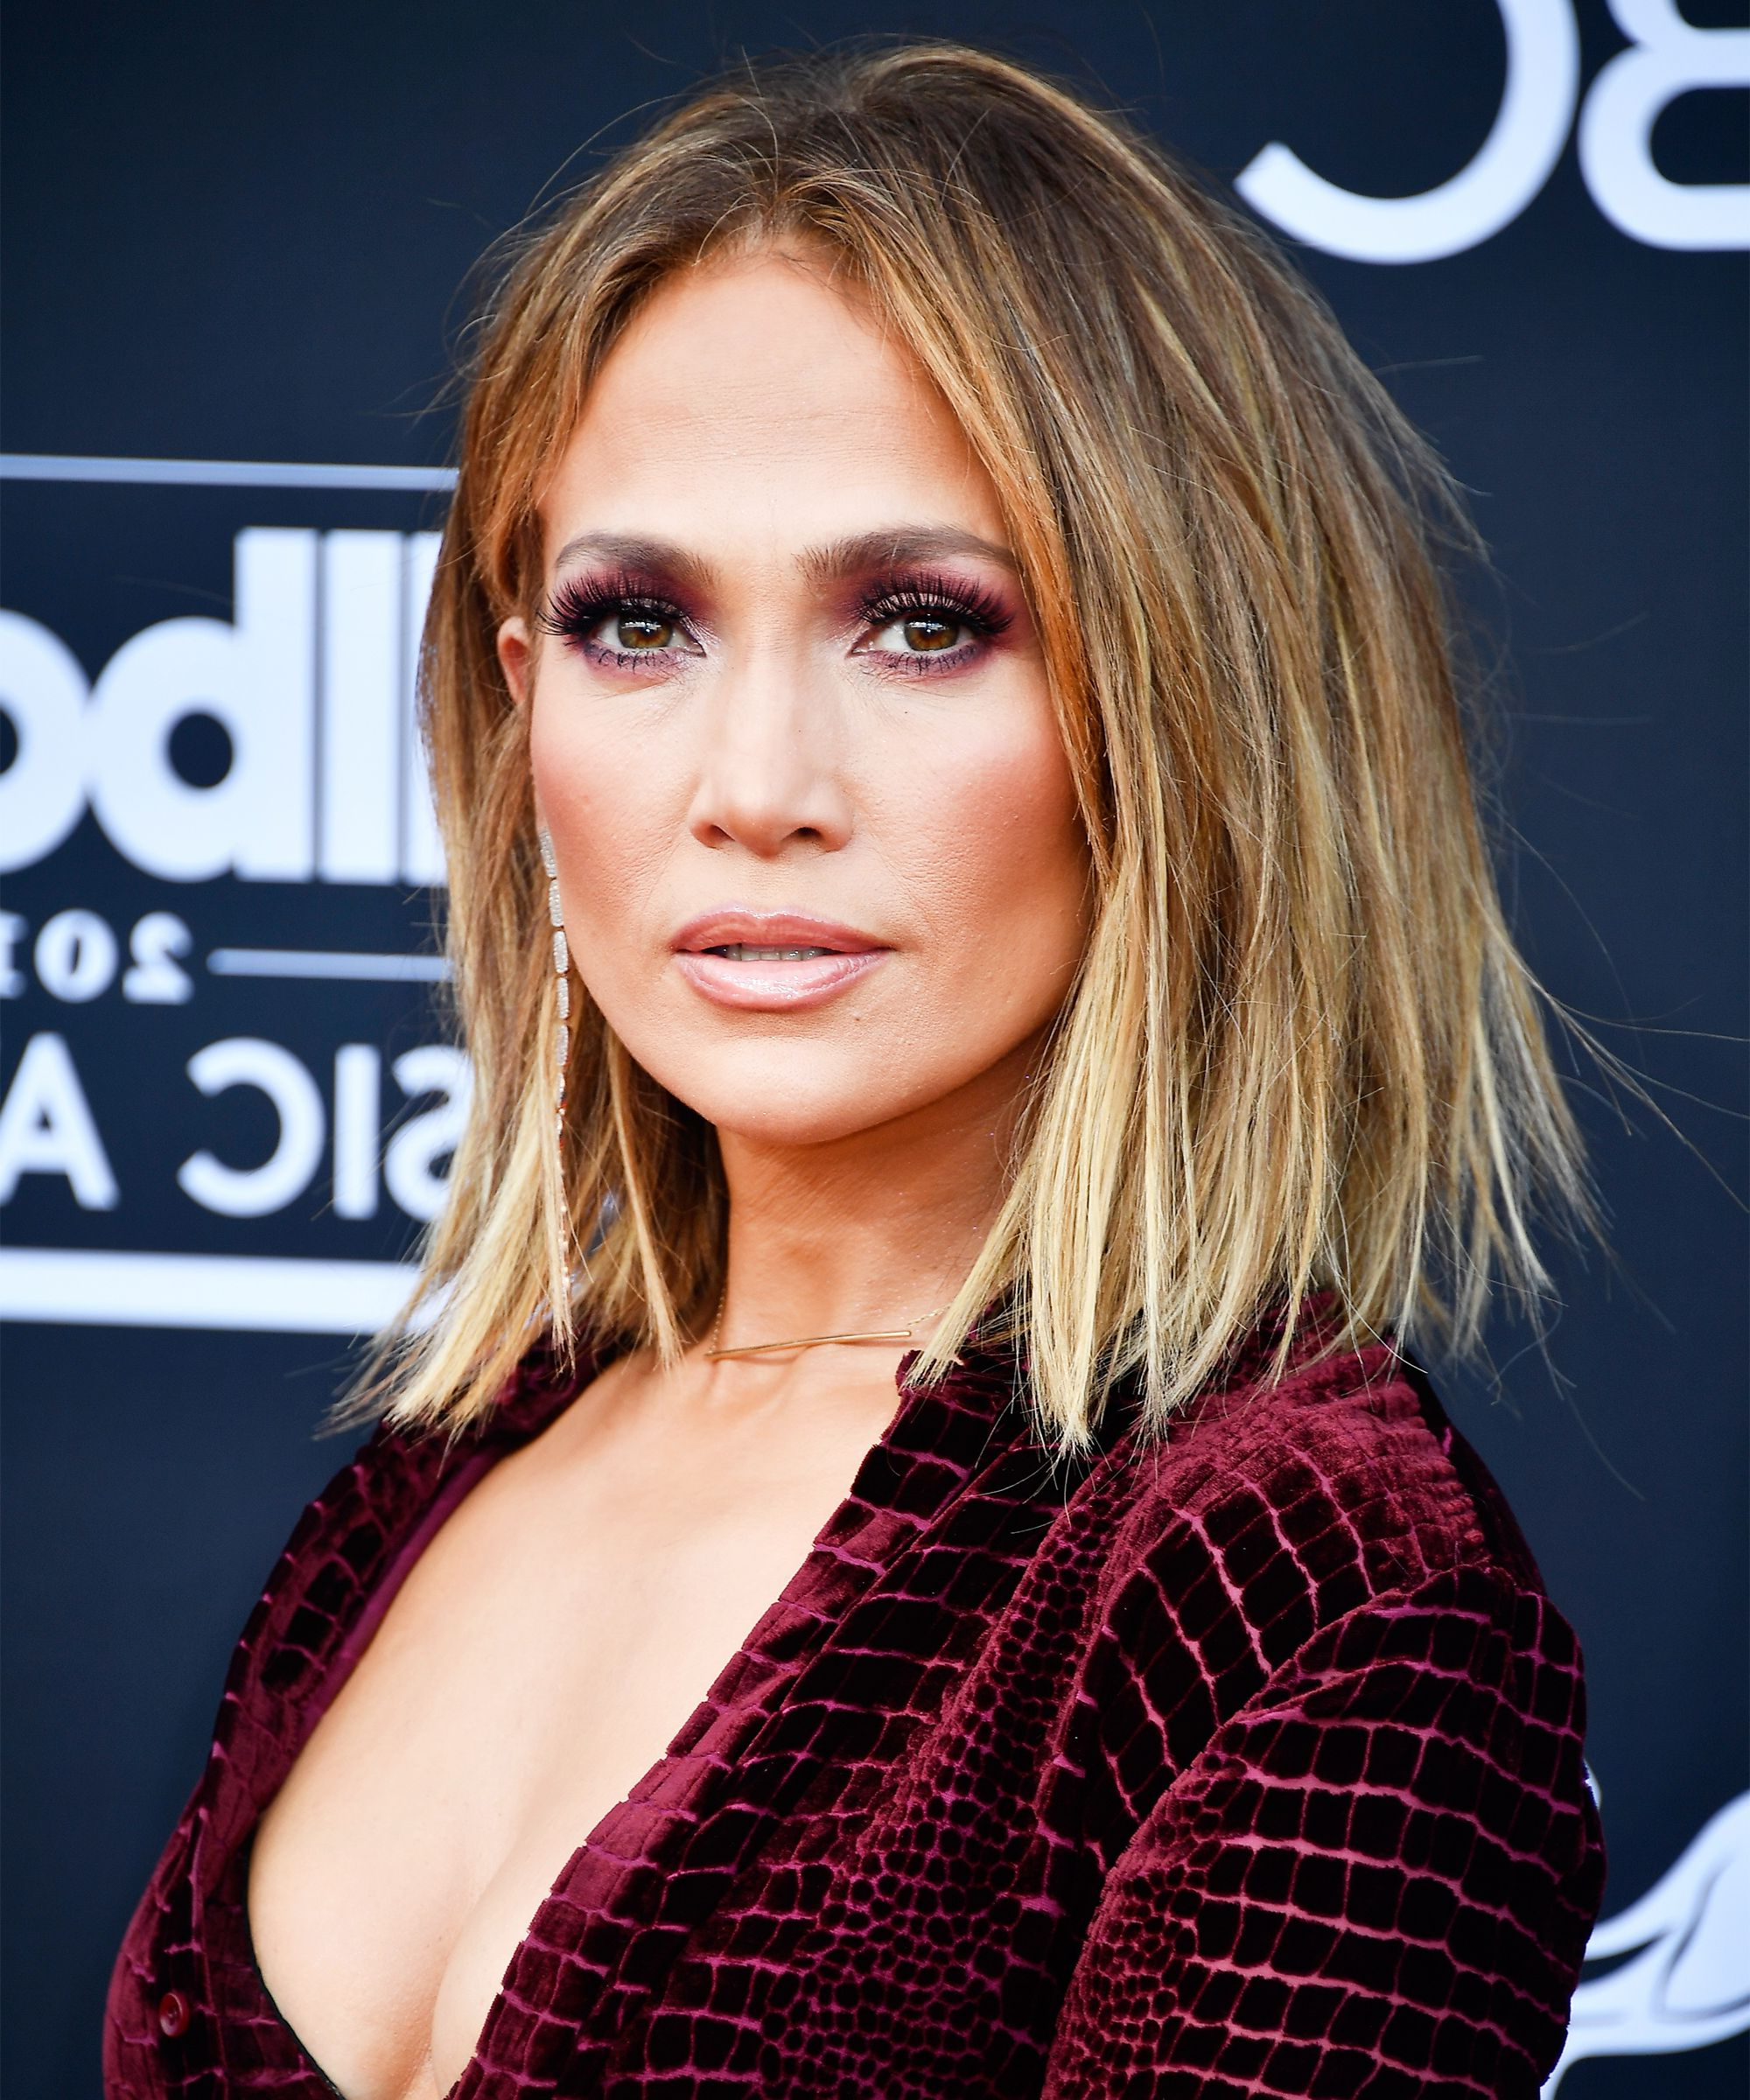 Jlo And More Celebrities Rocking Straight Bobs At Bbmas Regarding Jennifer Lopez Short Haircuts (View 7 of 25)